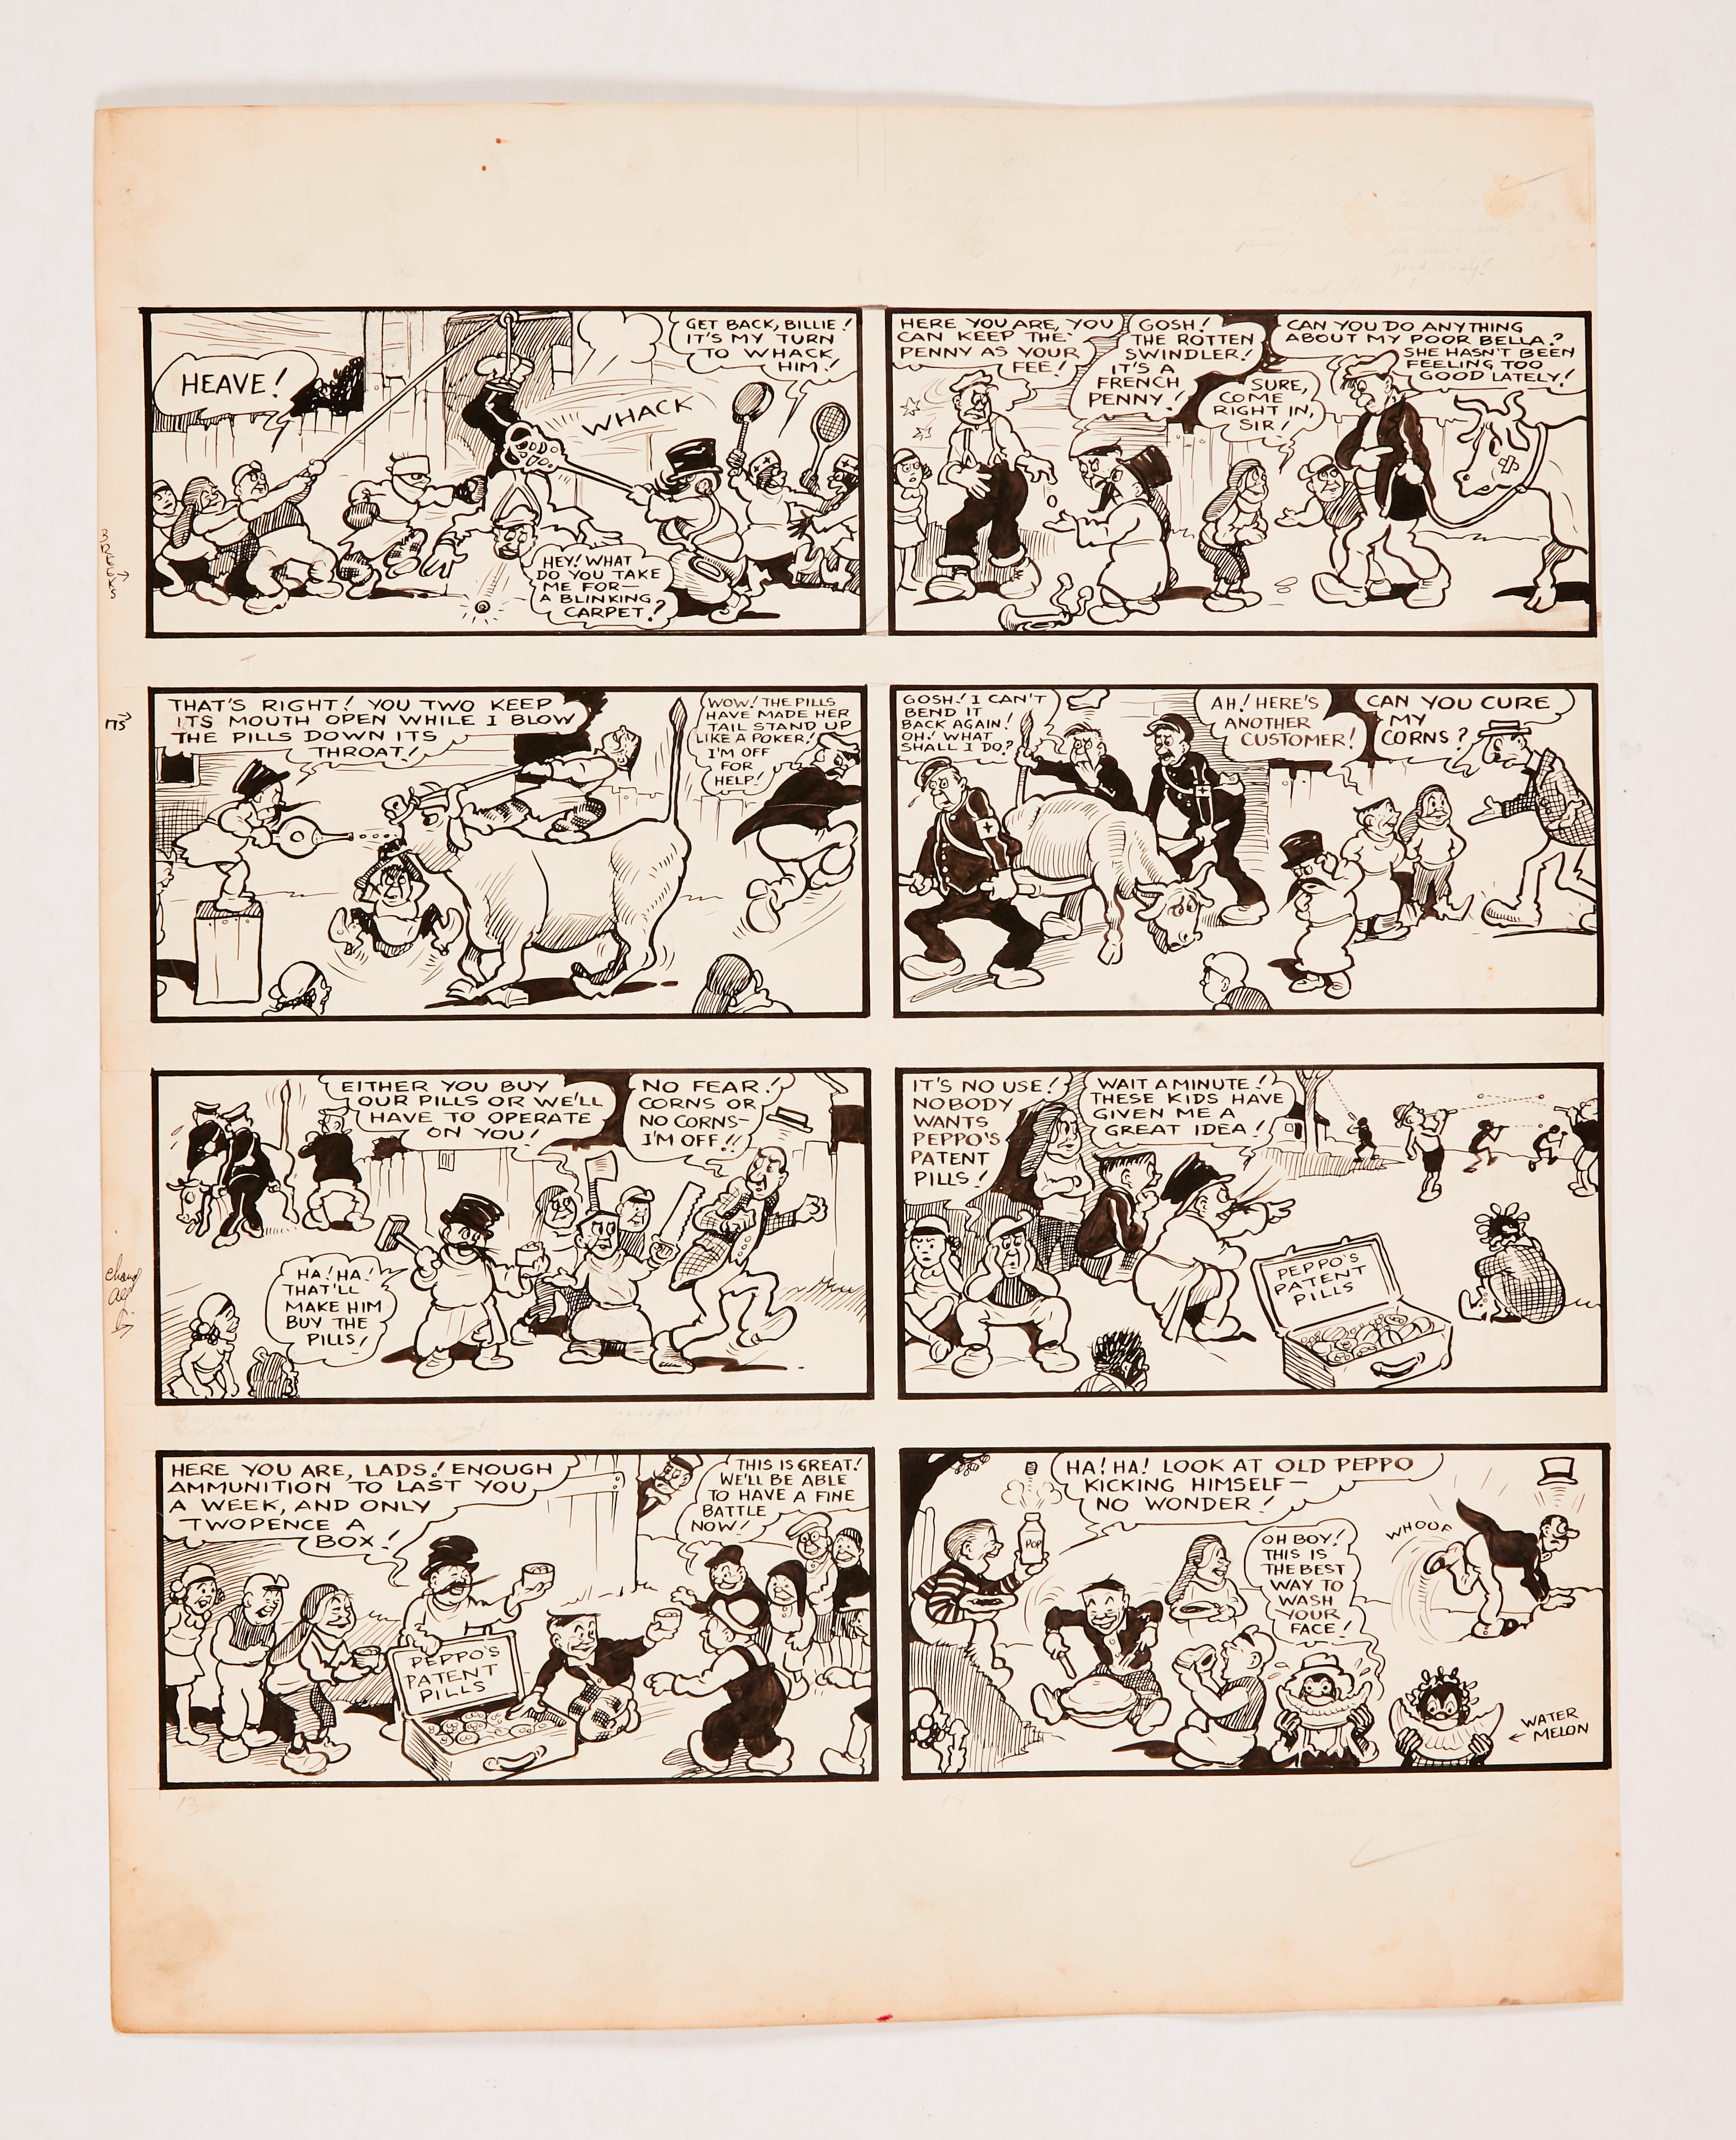 Our Gang original artwork by Dudley Watkins from The Dandy (late 1930s). From the Bob Monkhouse